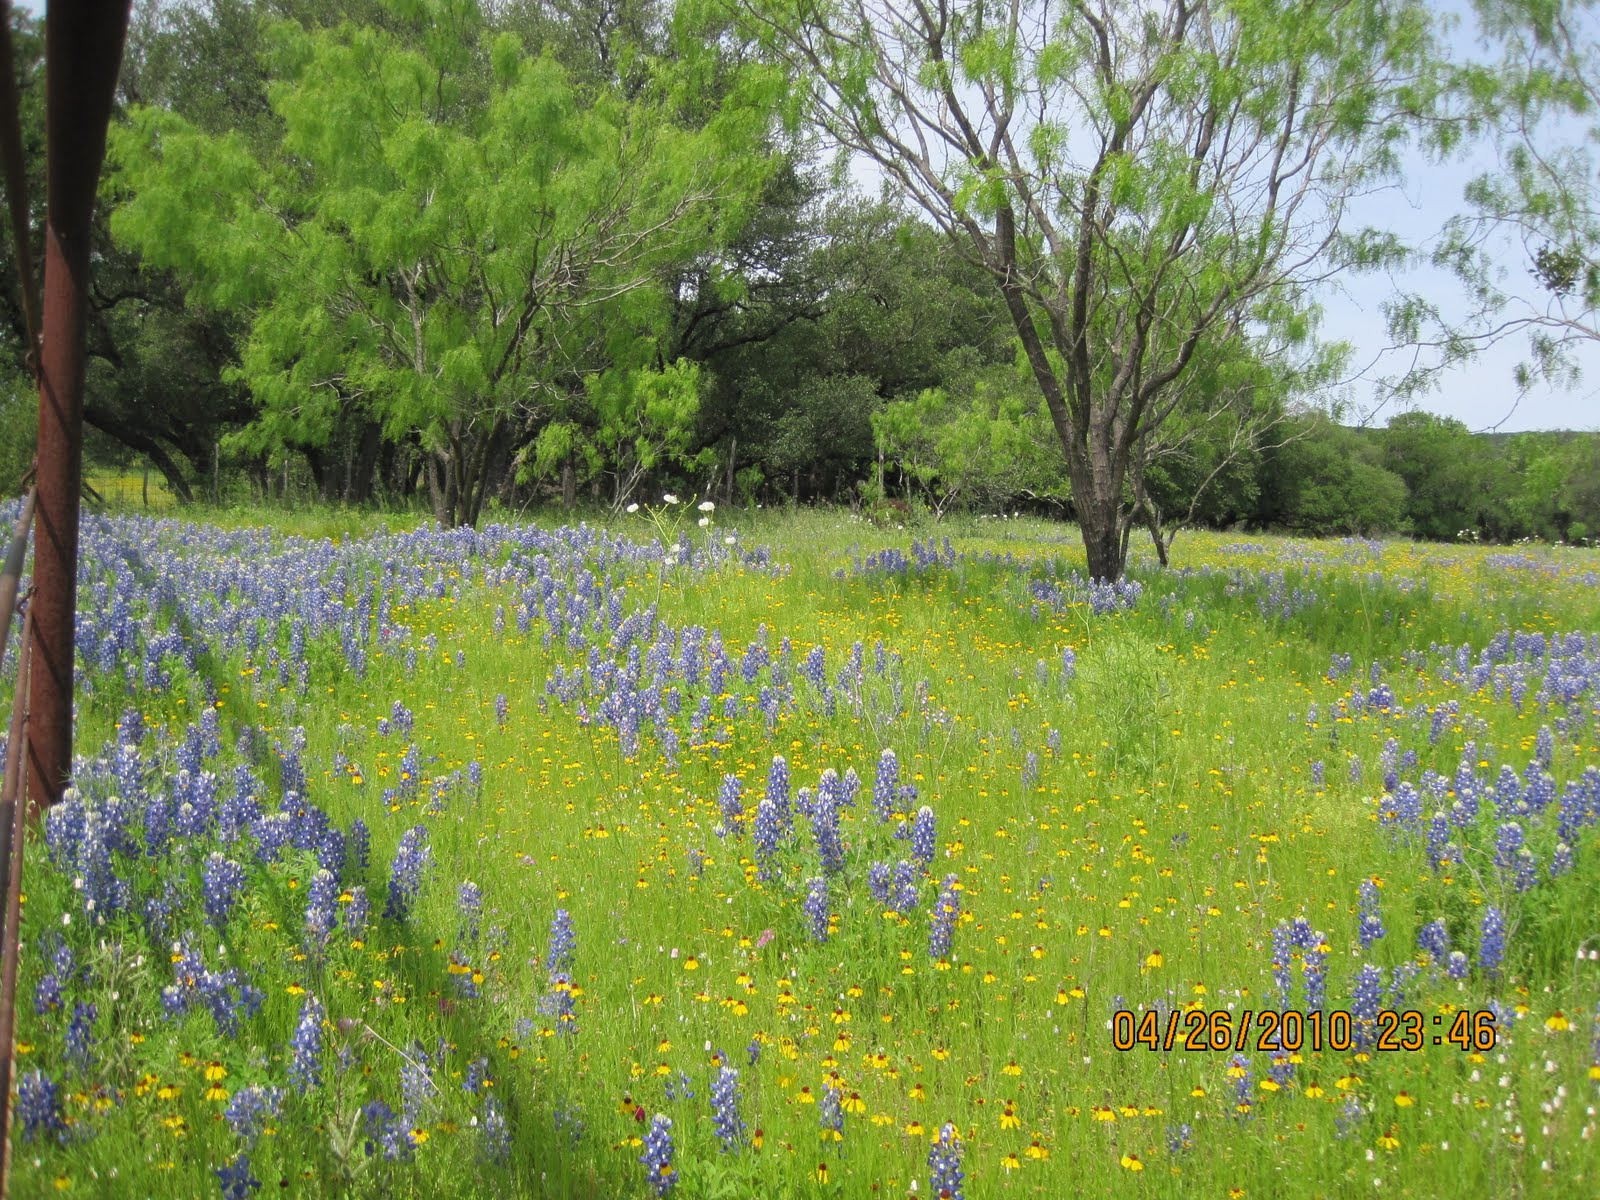 Texas Hill Country Spring 2010 Texas Hill Country Wild Flowers